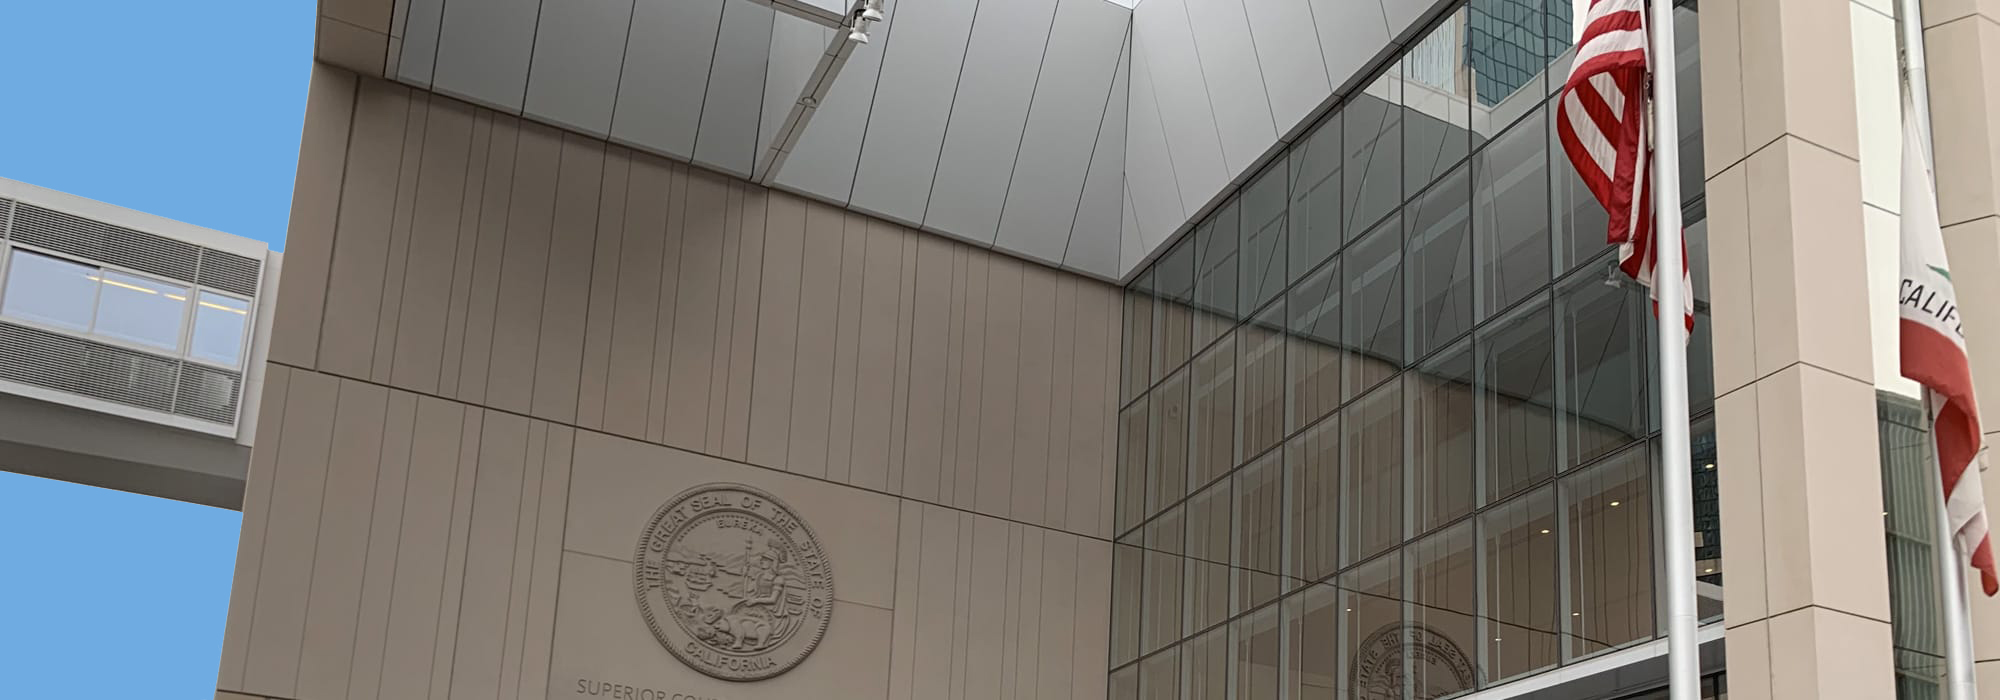 Photo of Superior Court Building in San Diego, CA